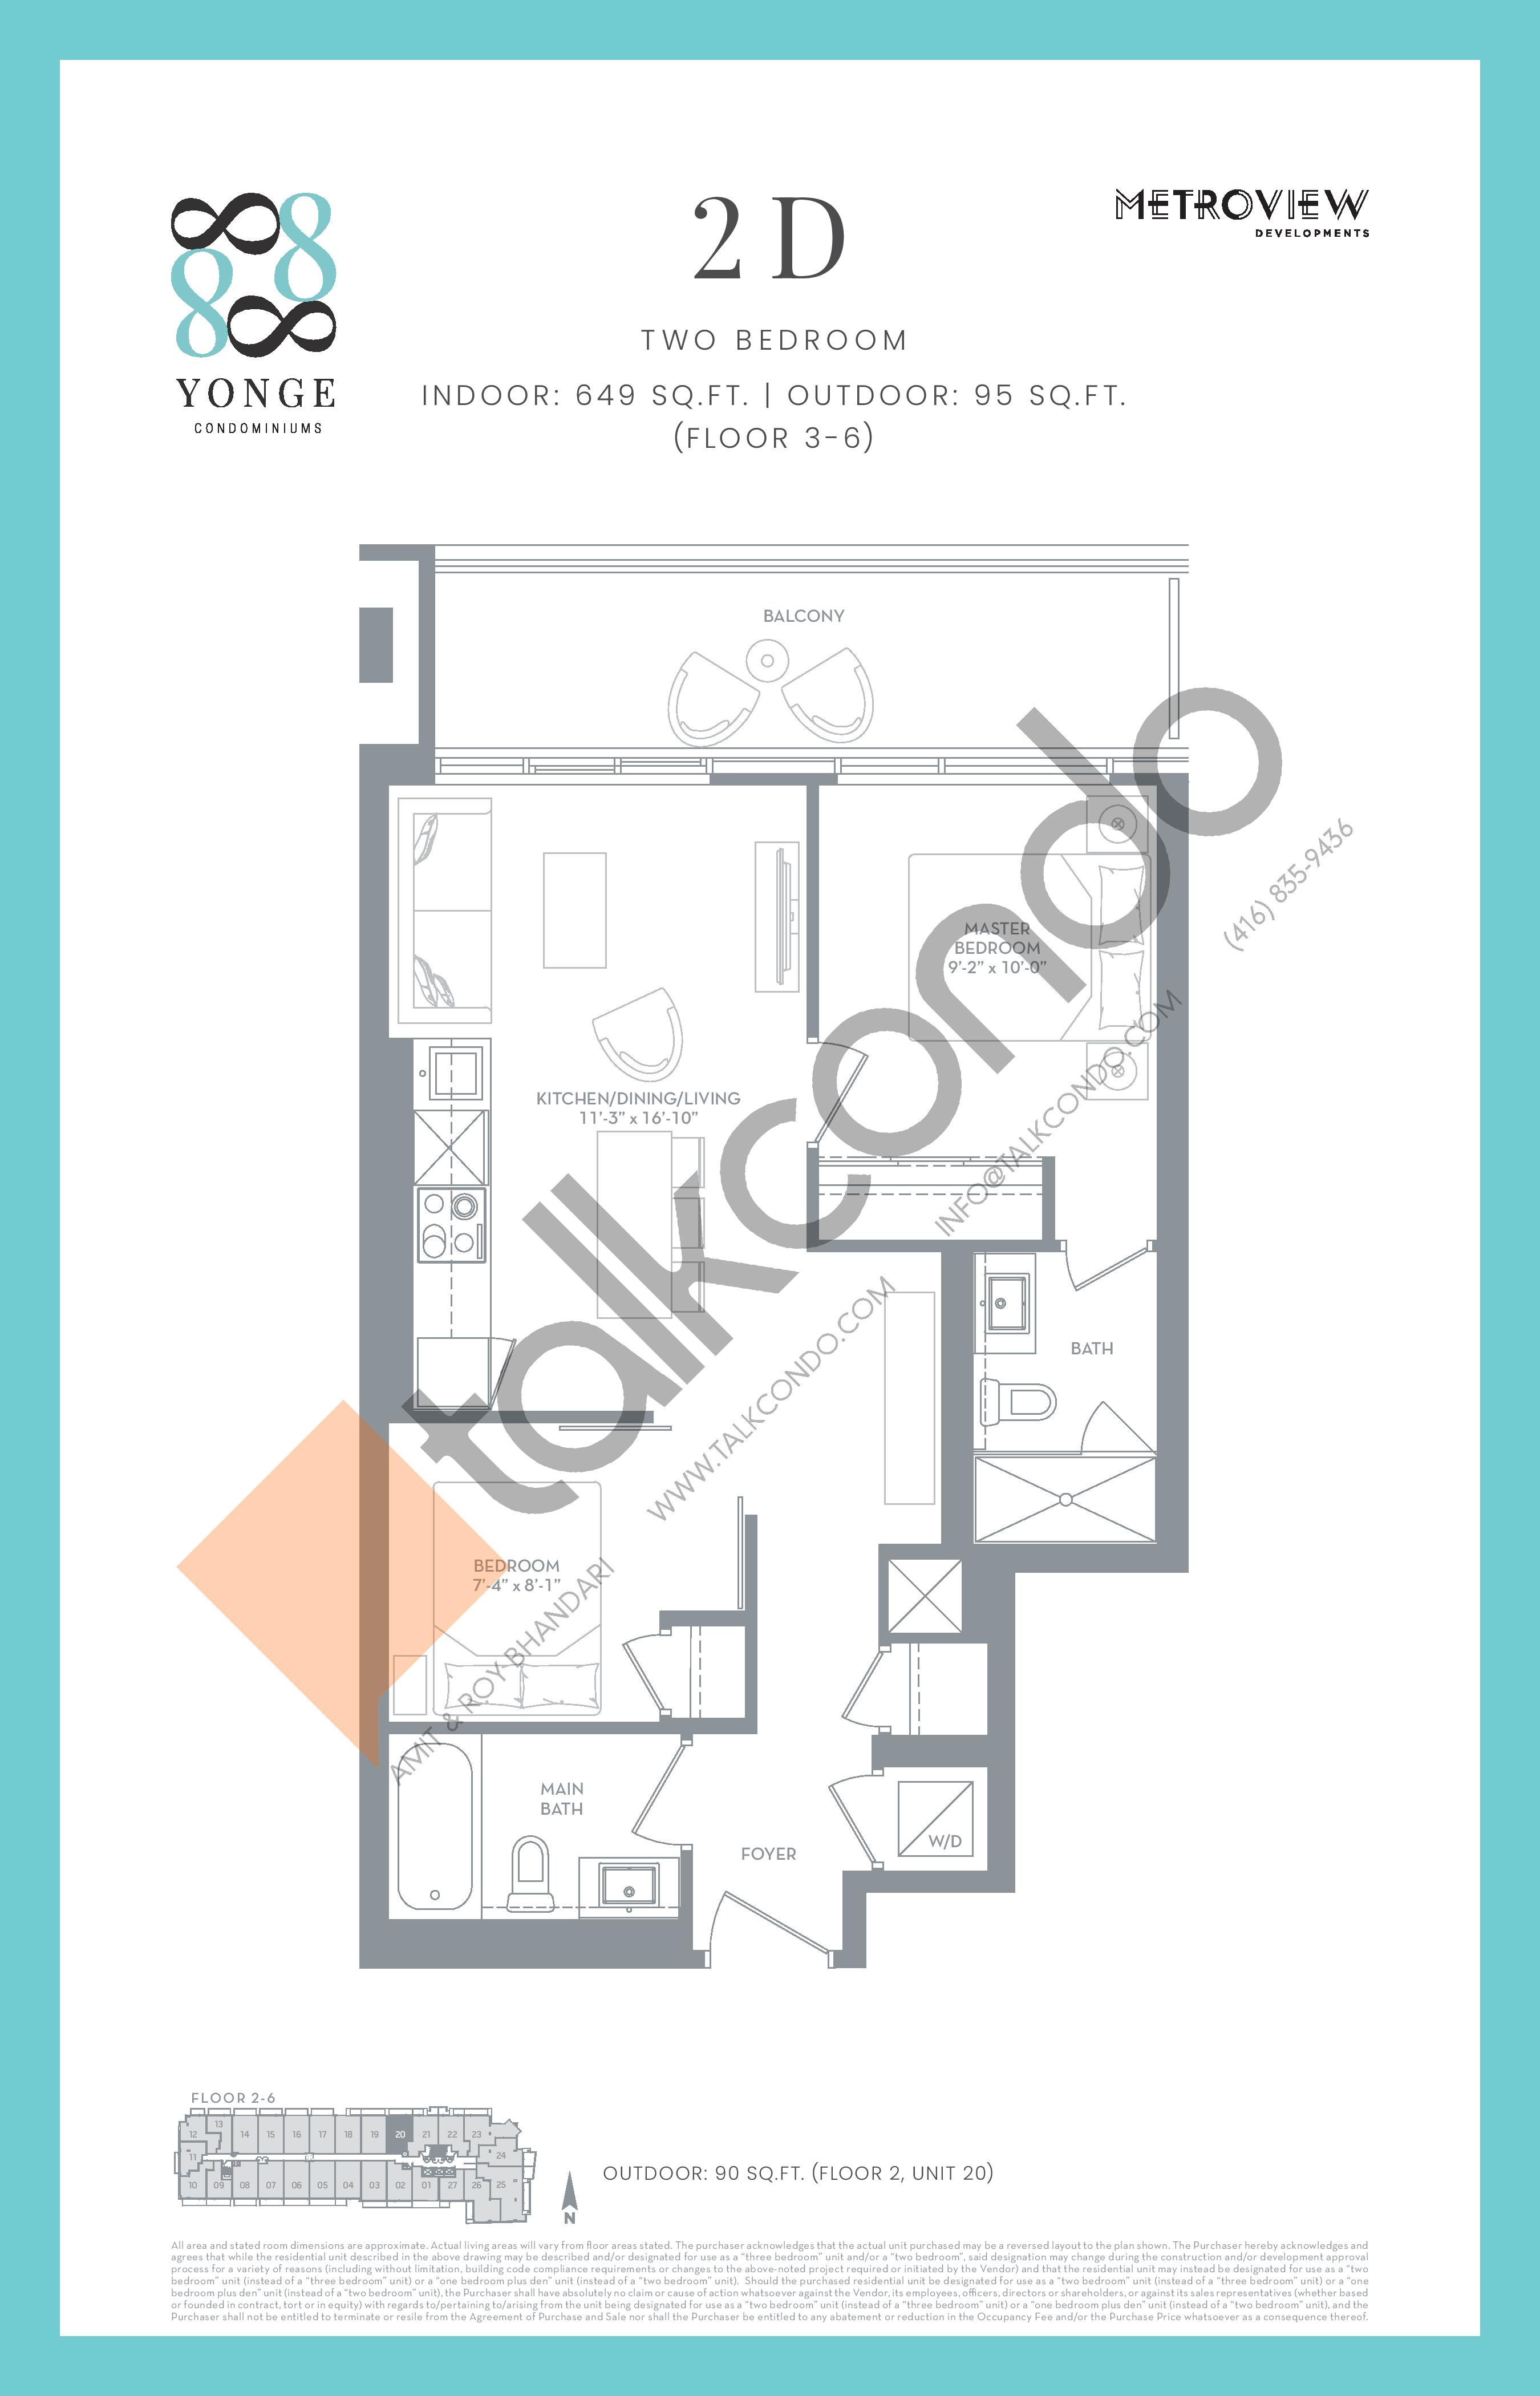 2D Floor Plan at 8888 Yonge Street Condos - 649 sq.ft